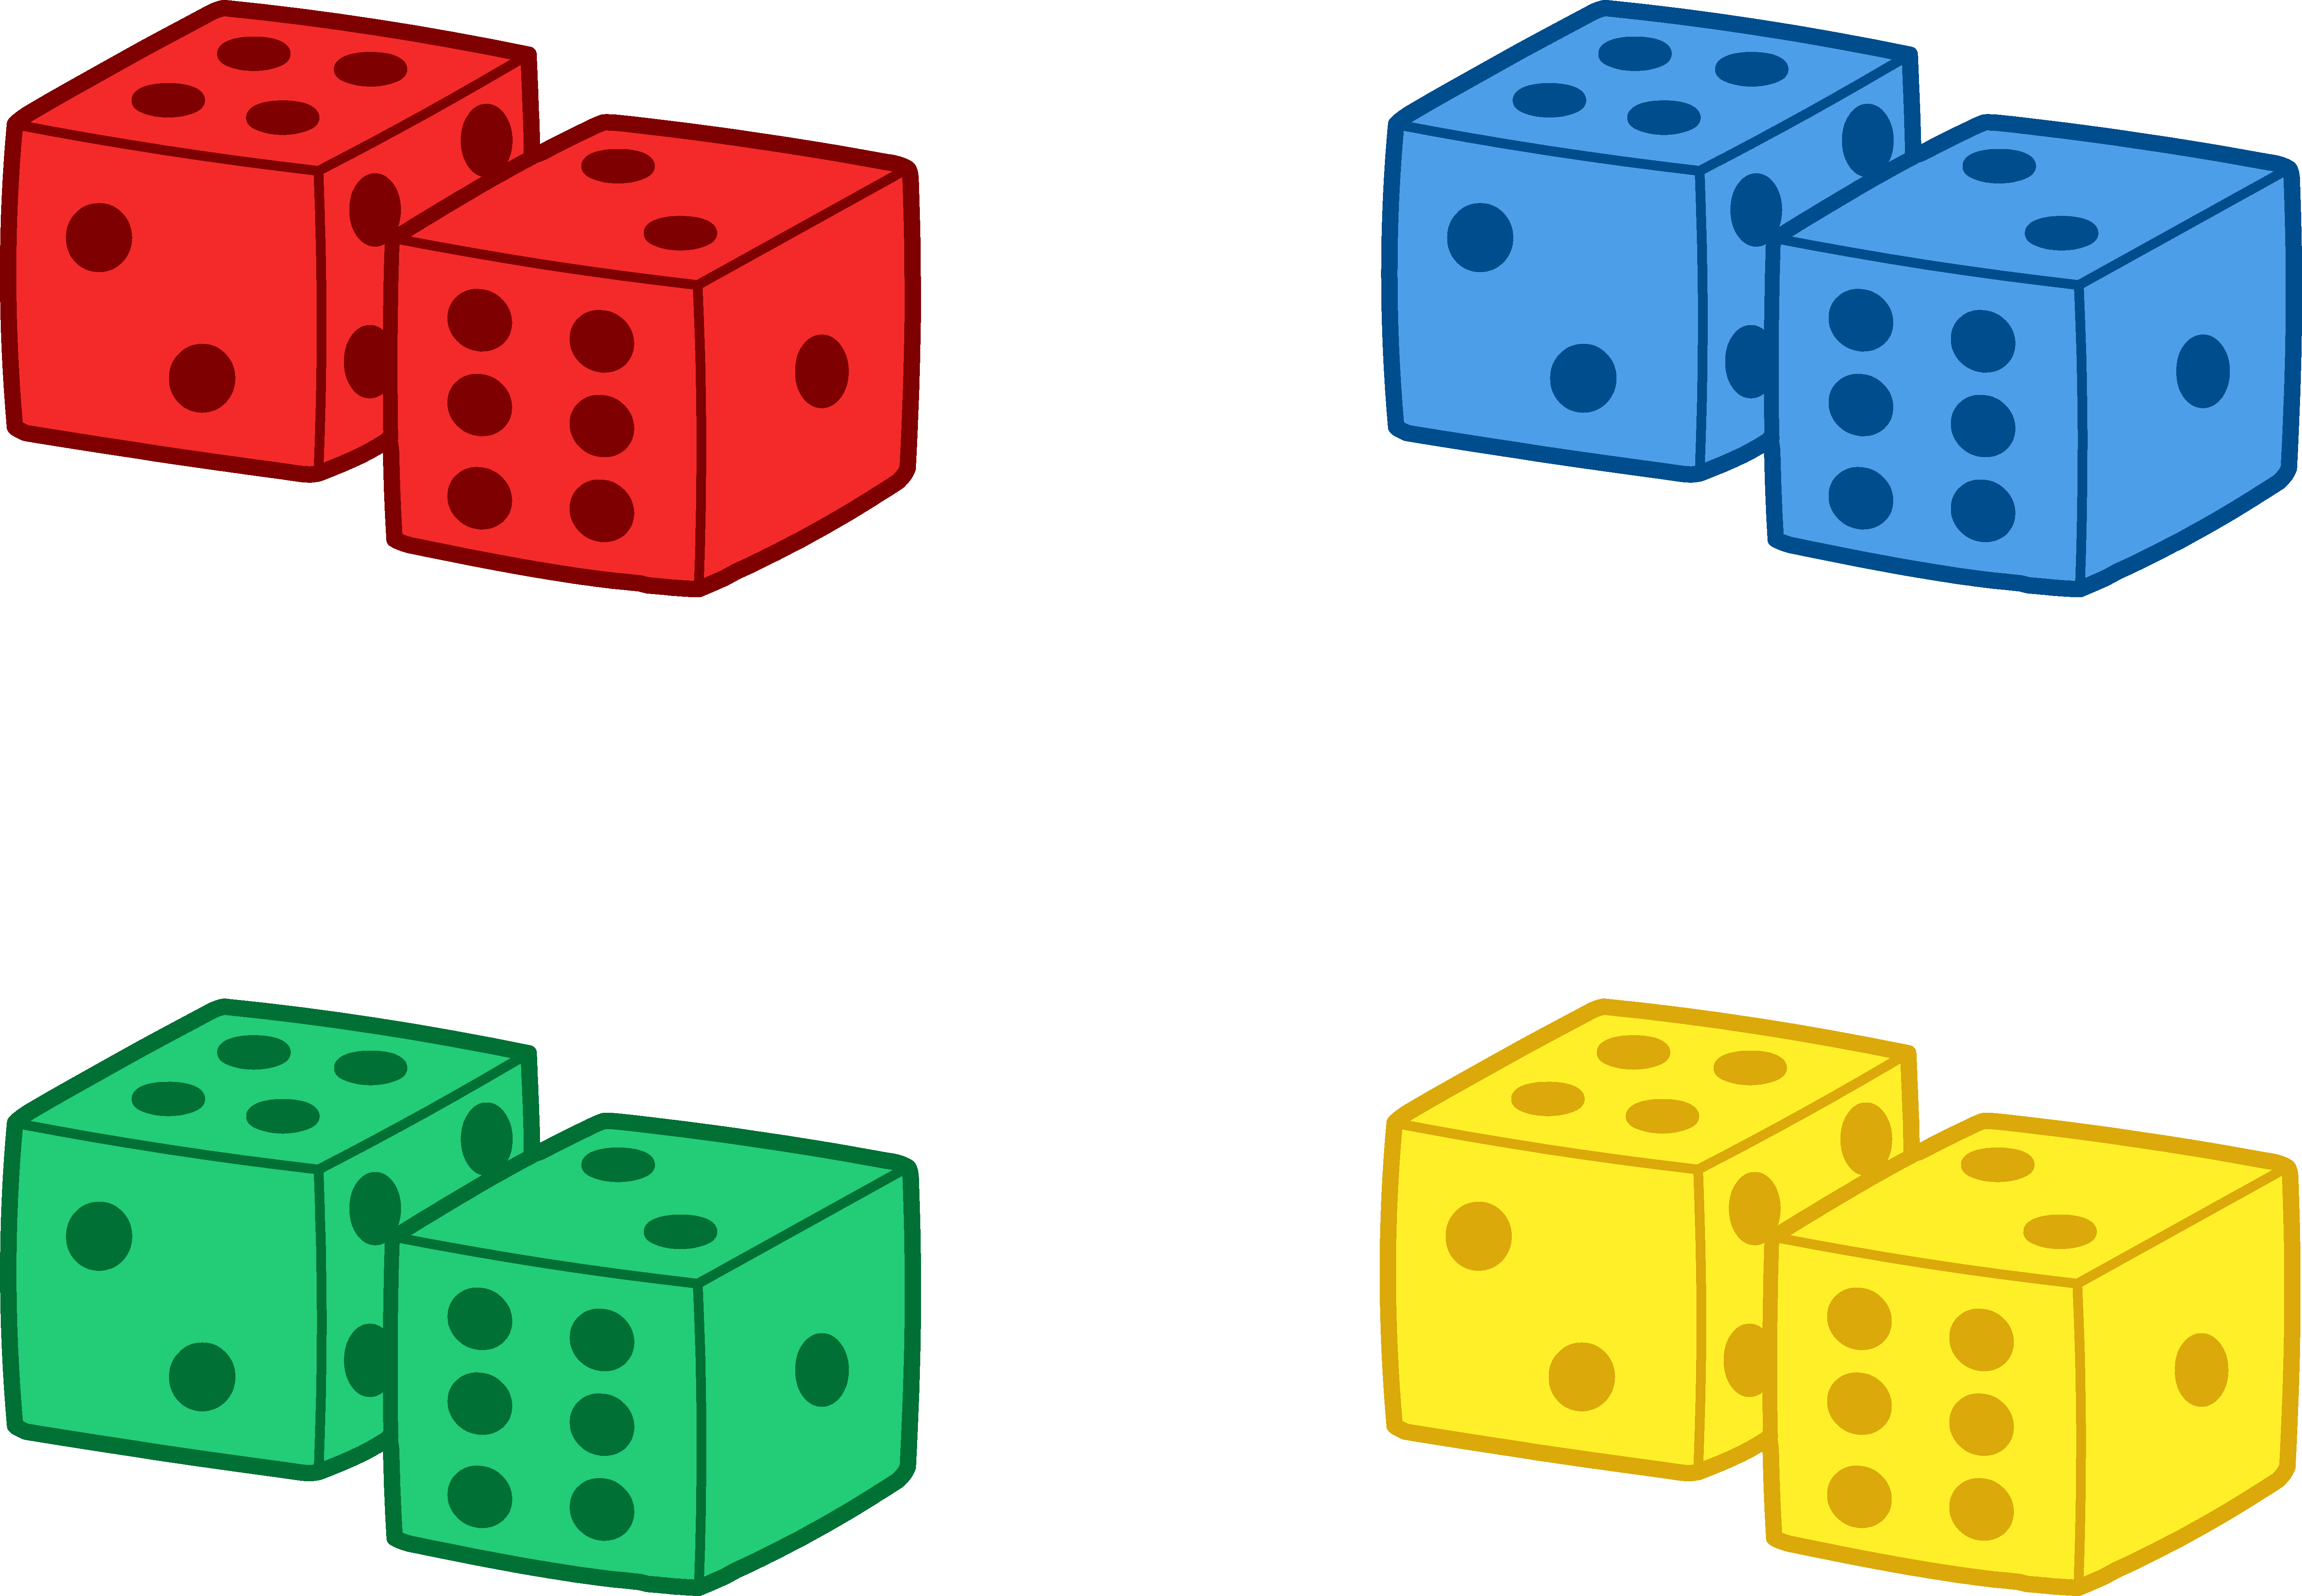 5896x4089 Set Of Colorful Playing Dice